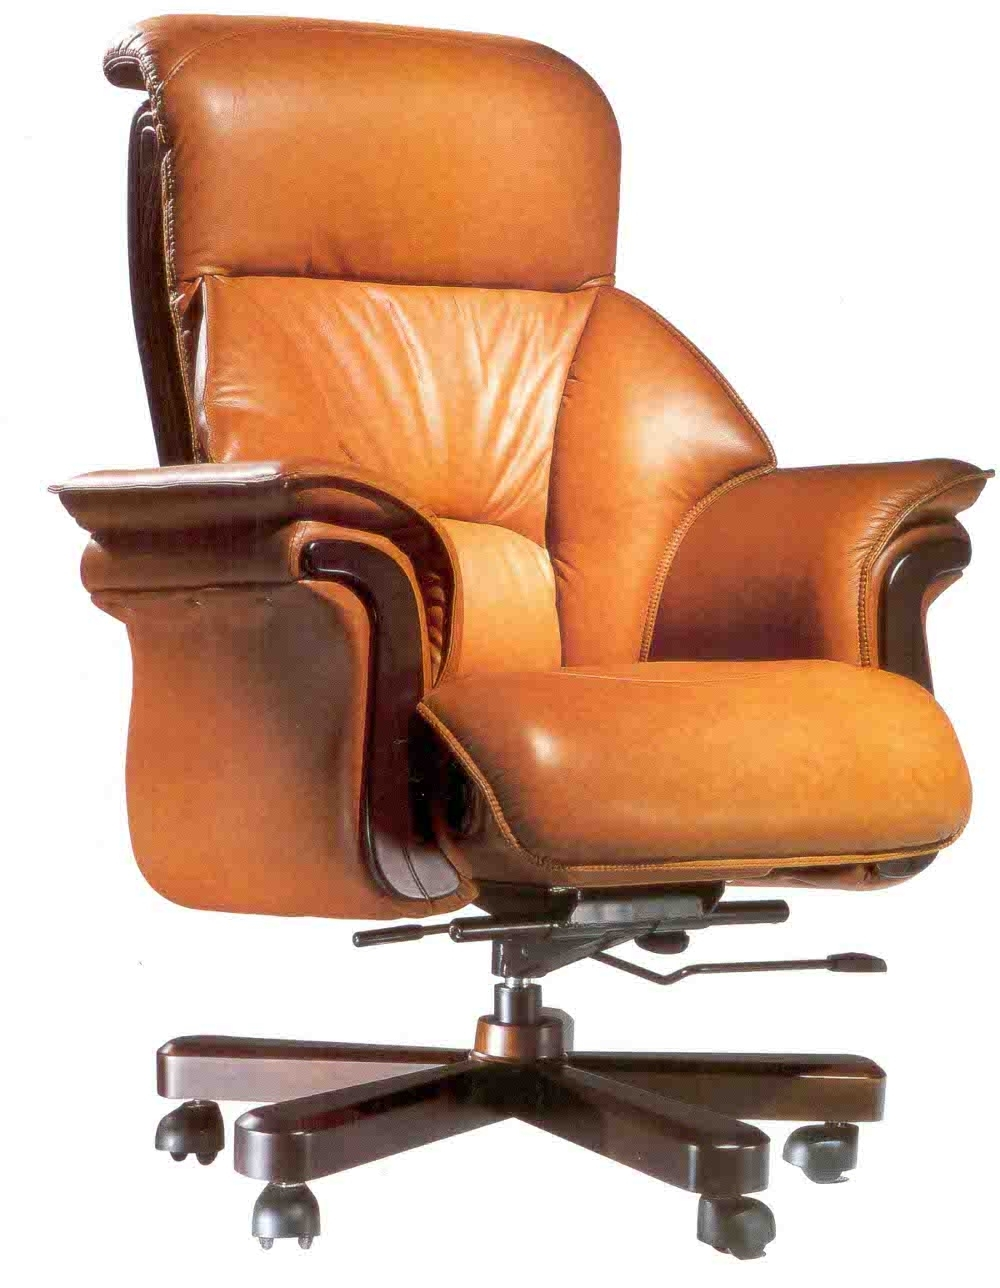 Well Known Wood And Leather Executive Office Chairs Throughout Office: Office Chairs Ideas With Black Leather Executive Chair (View 14 of 20)